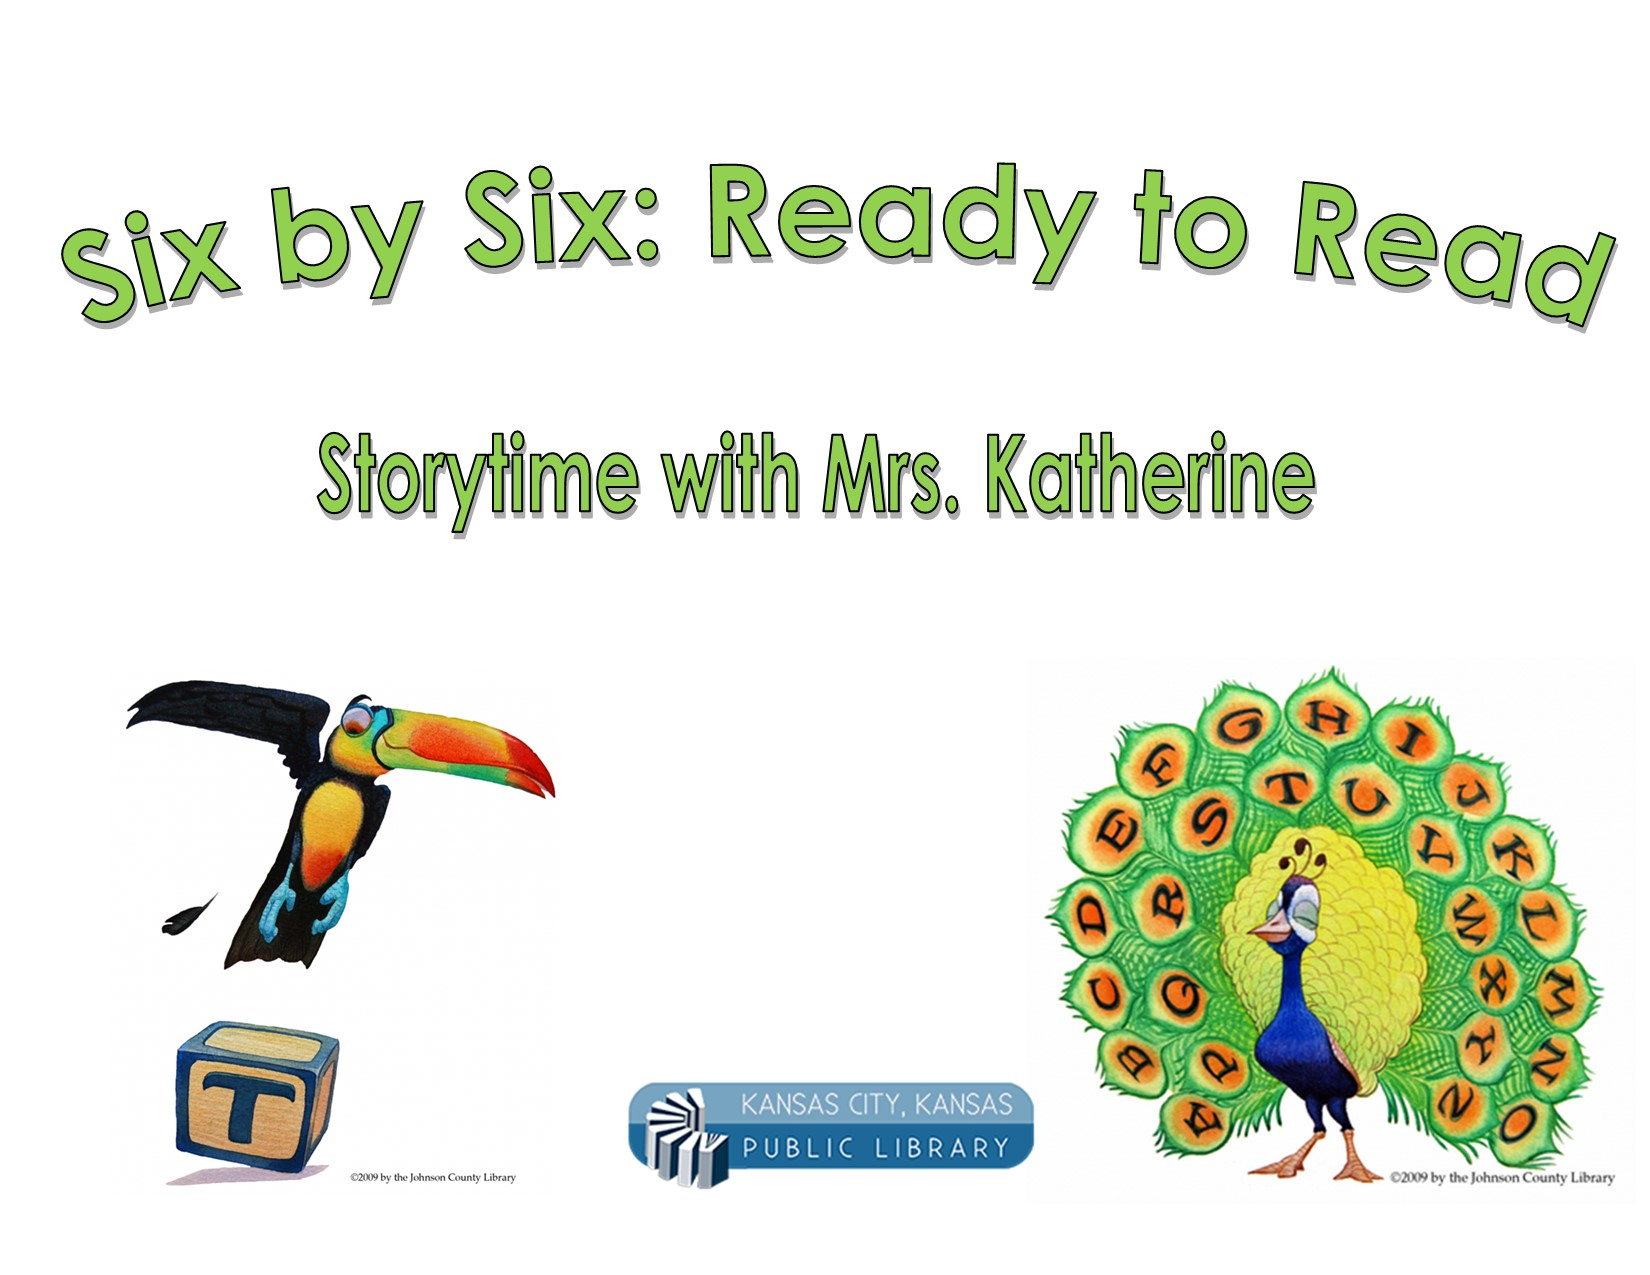 six by six ready to read storytime with miss katherine